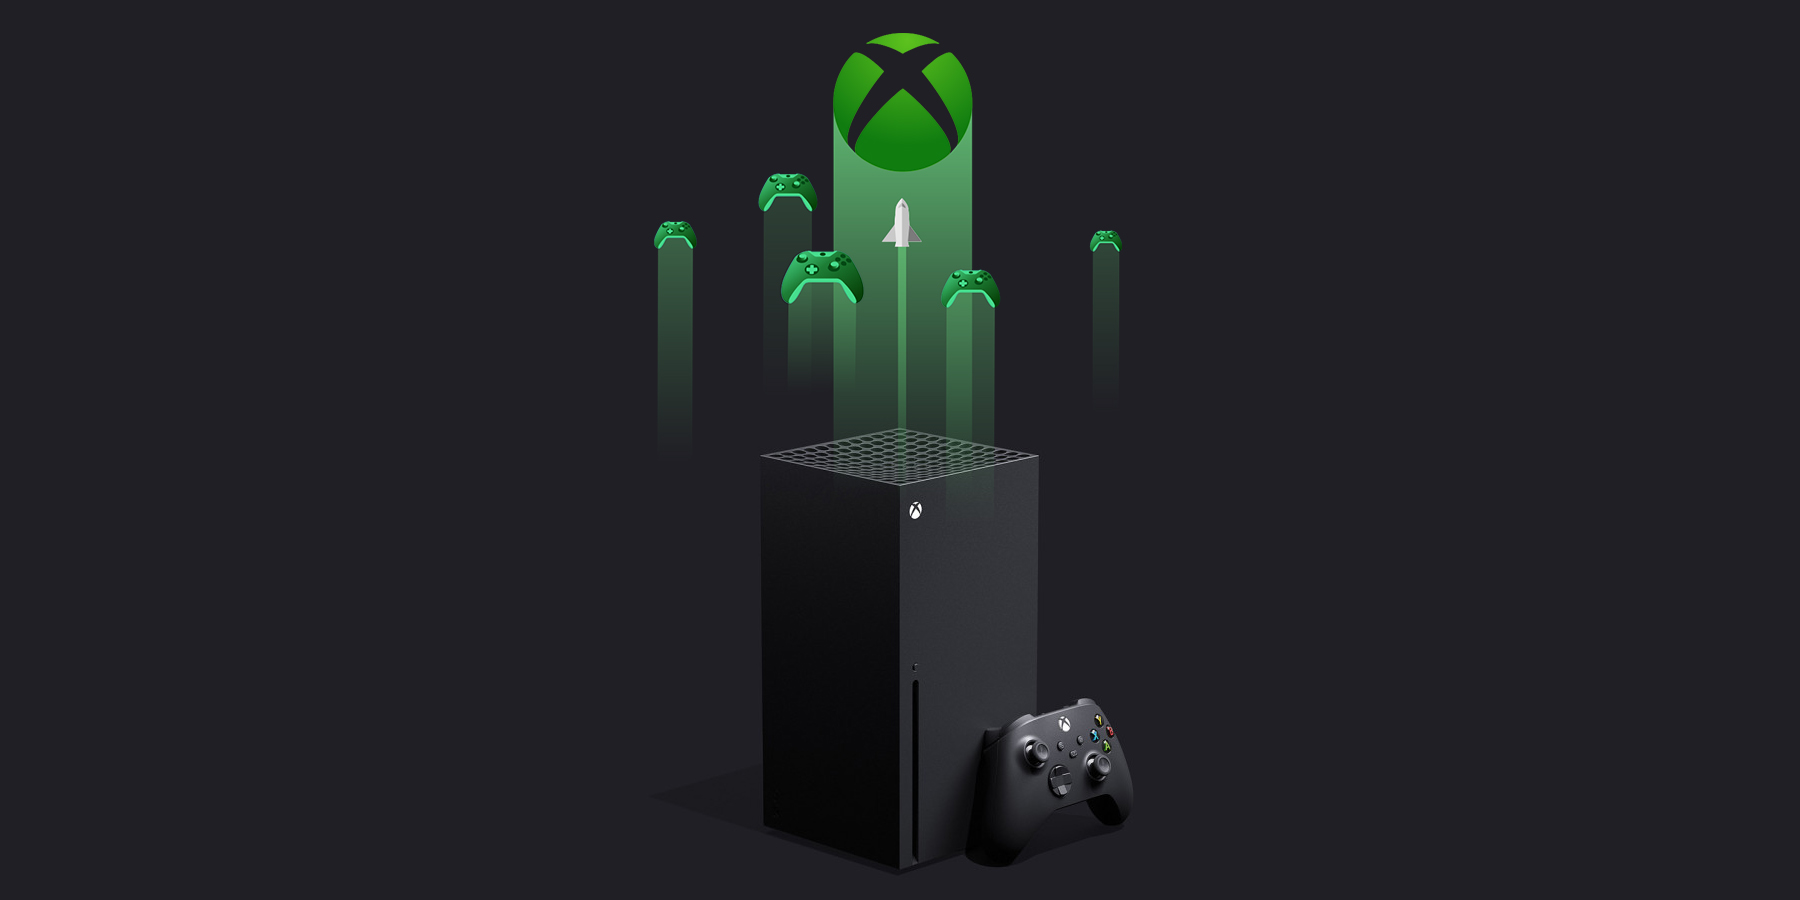 Xbox Cloud Gaming is now fully powered